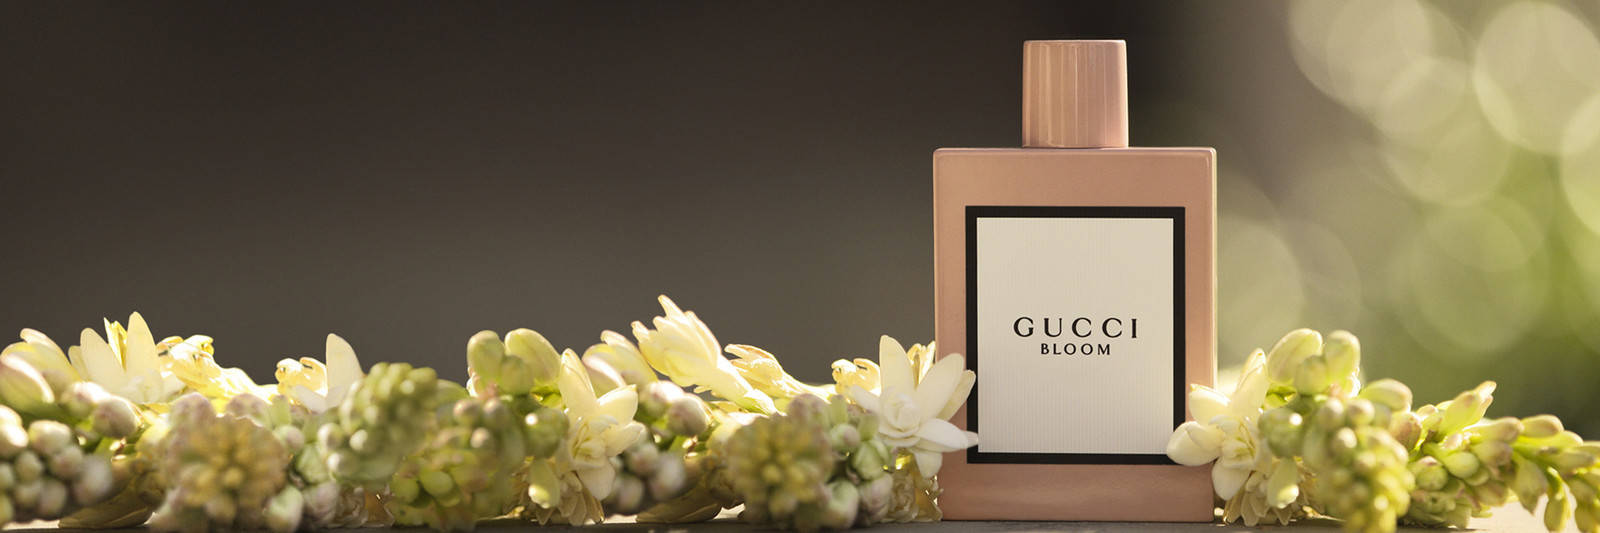 Gucci's Fantastic Fragrance: Bloom